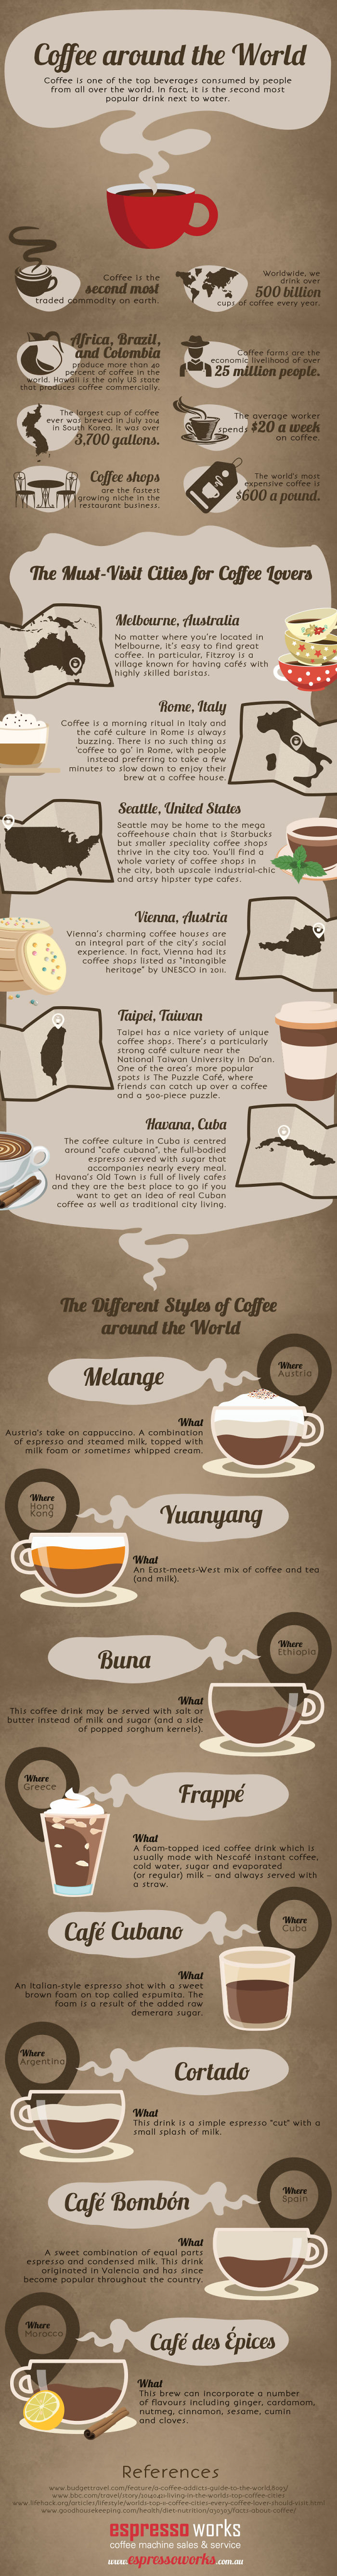 Coffee Culture Around The World – Infographic